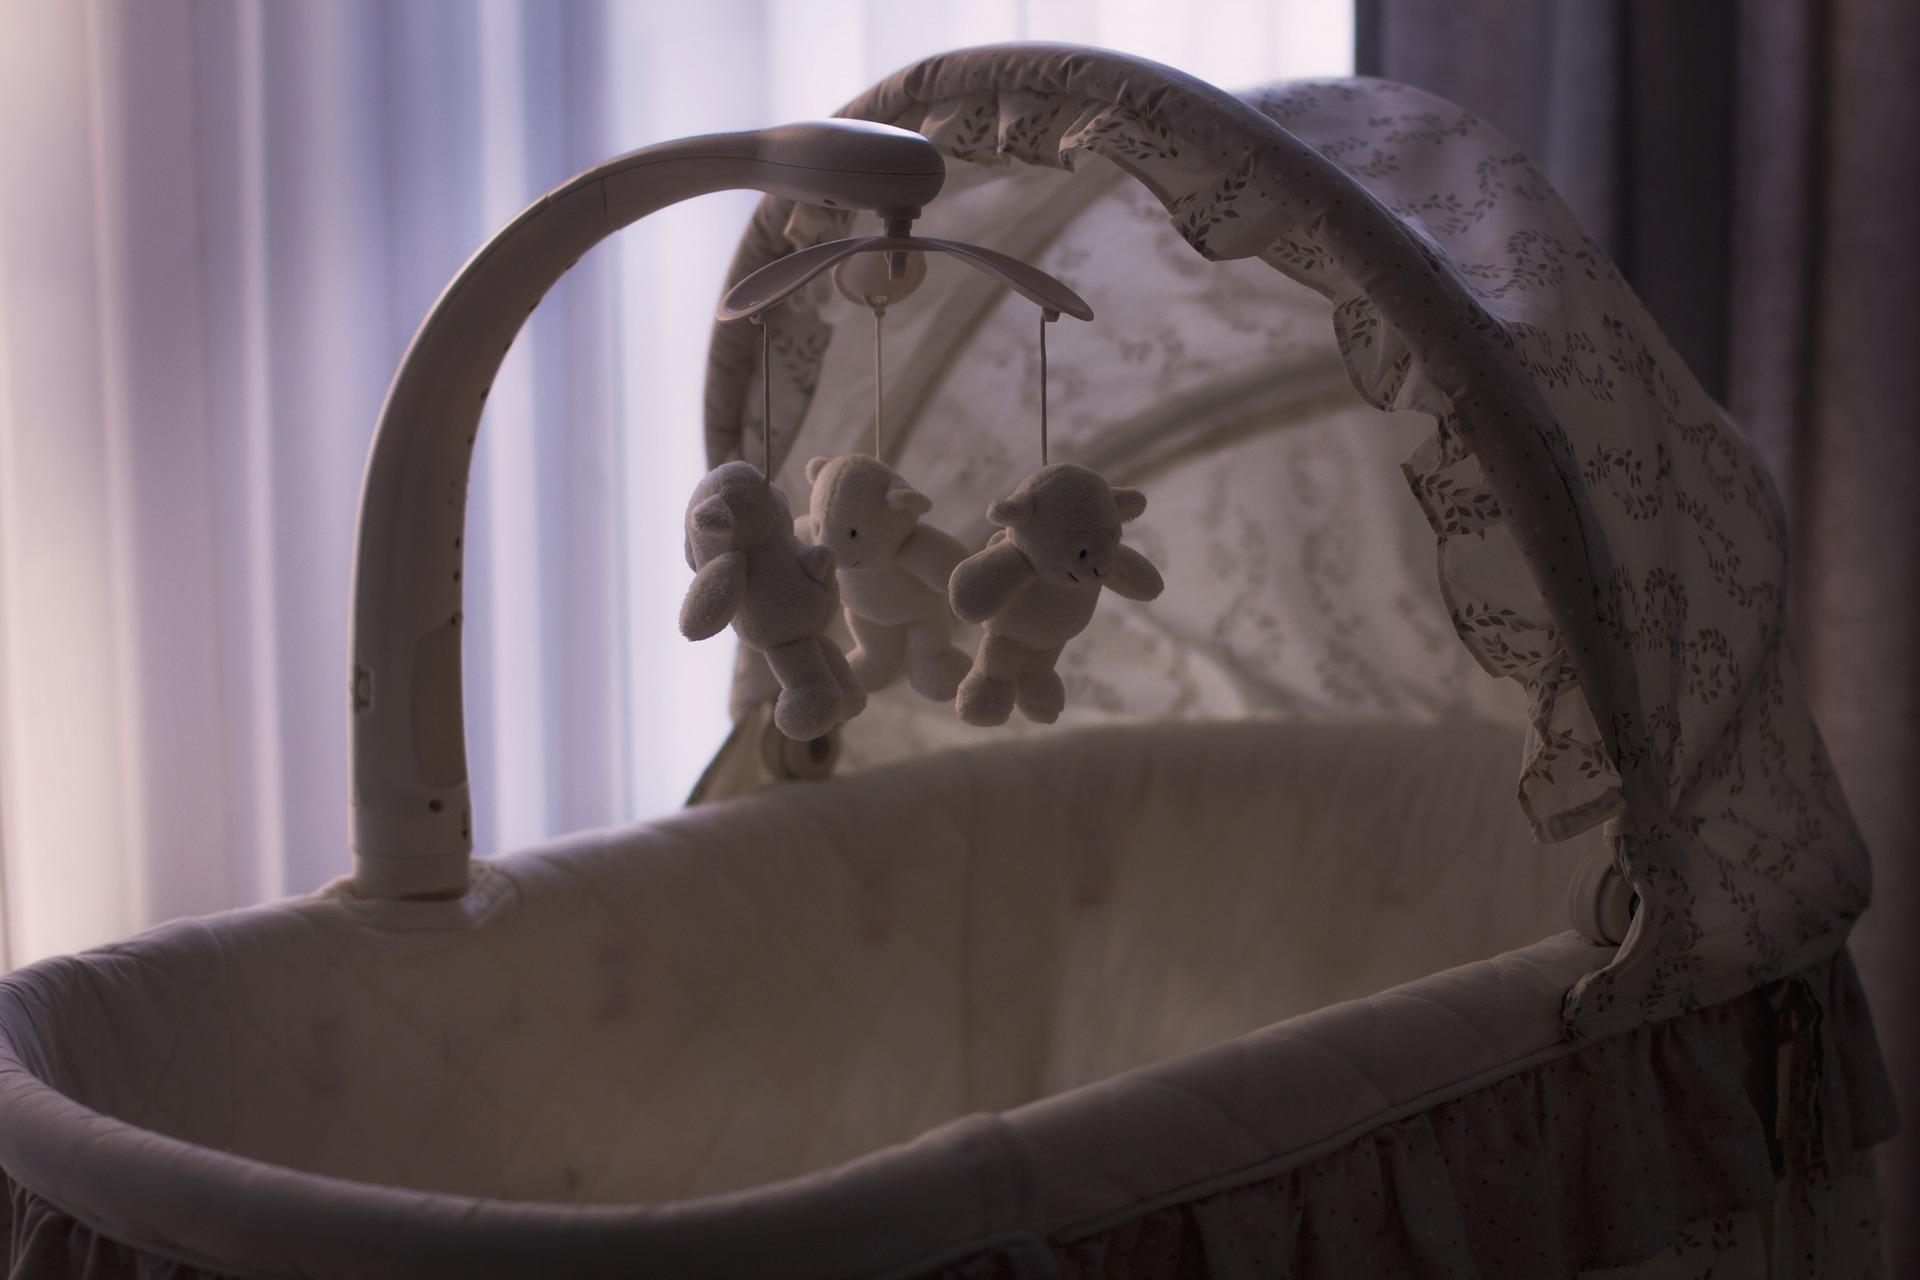 An empty baby cradle, with a spinning mobile of bear toys hanging above.